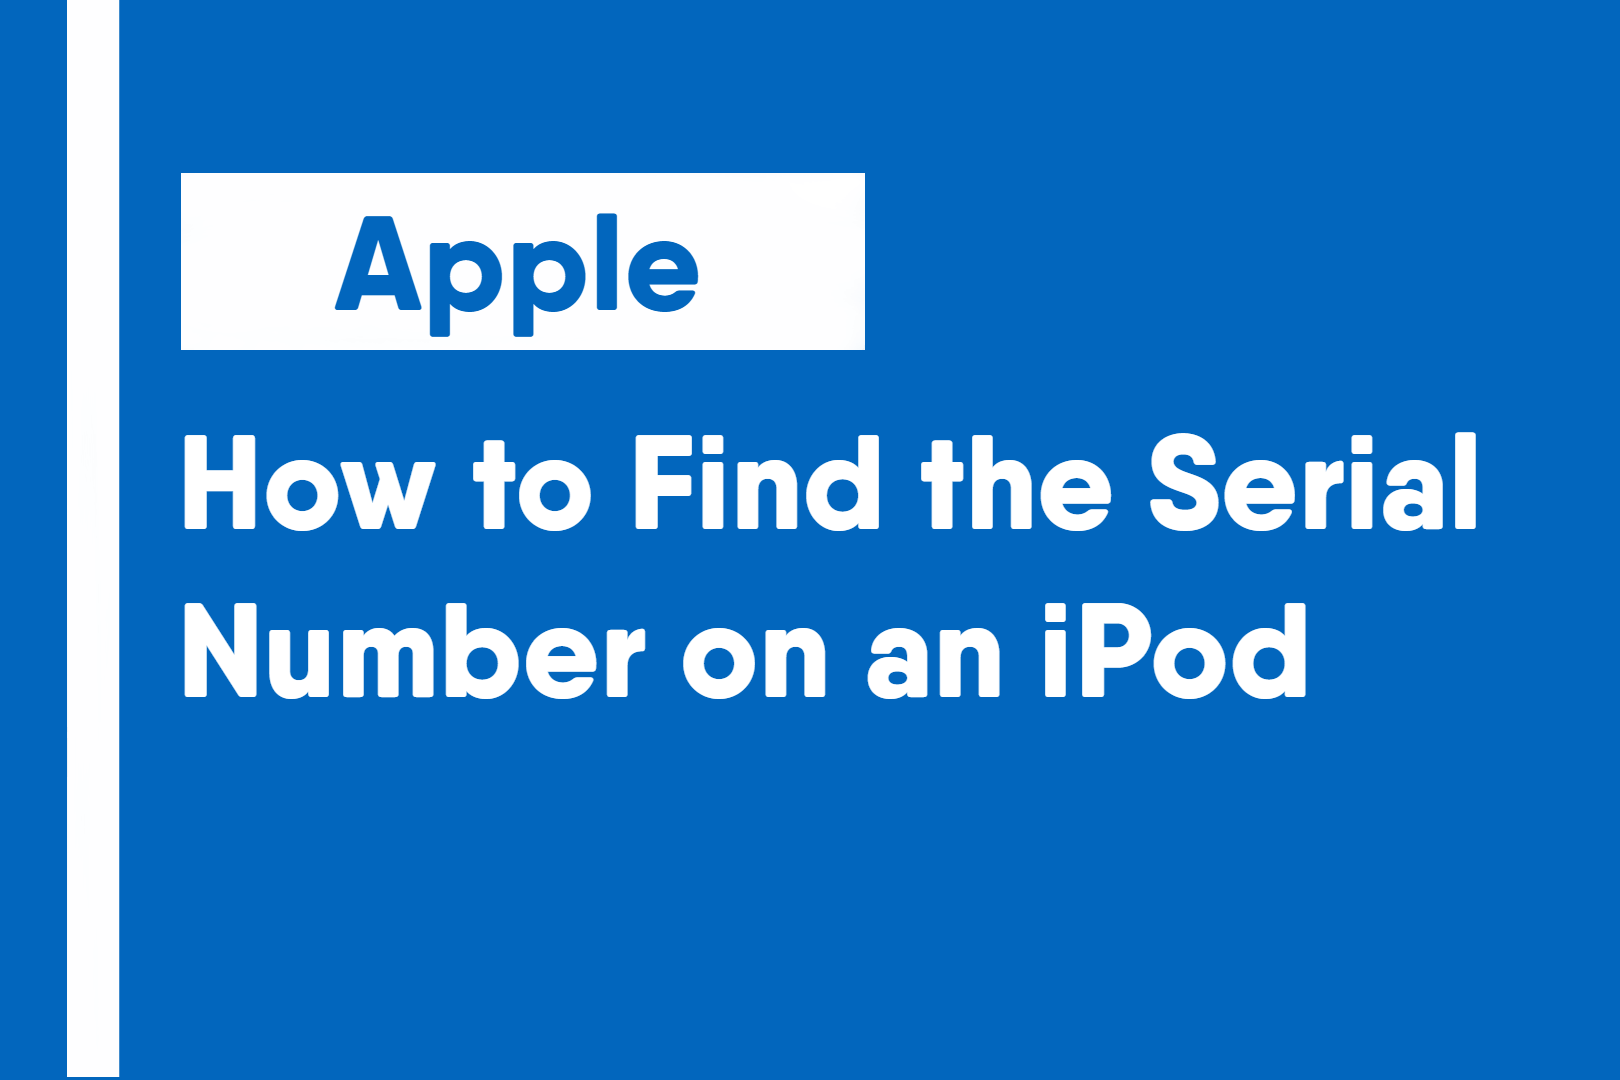 How to Find the Serial Number on an iPod